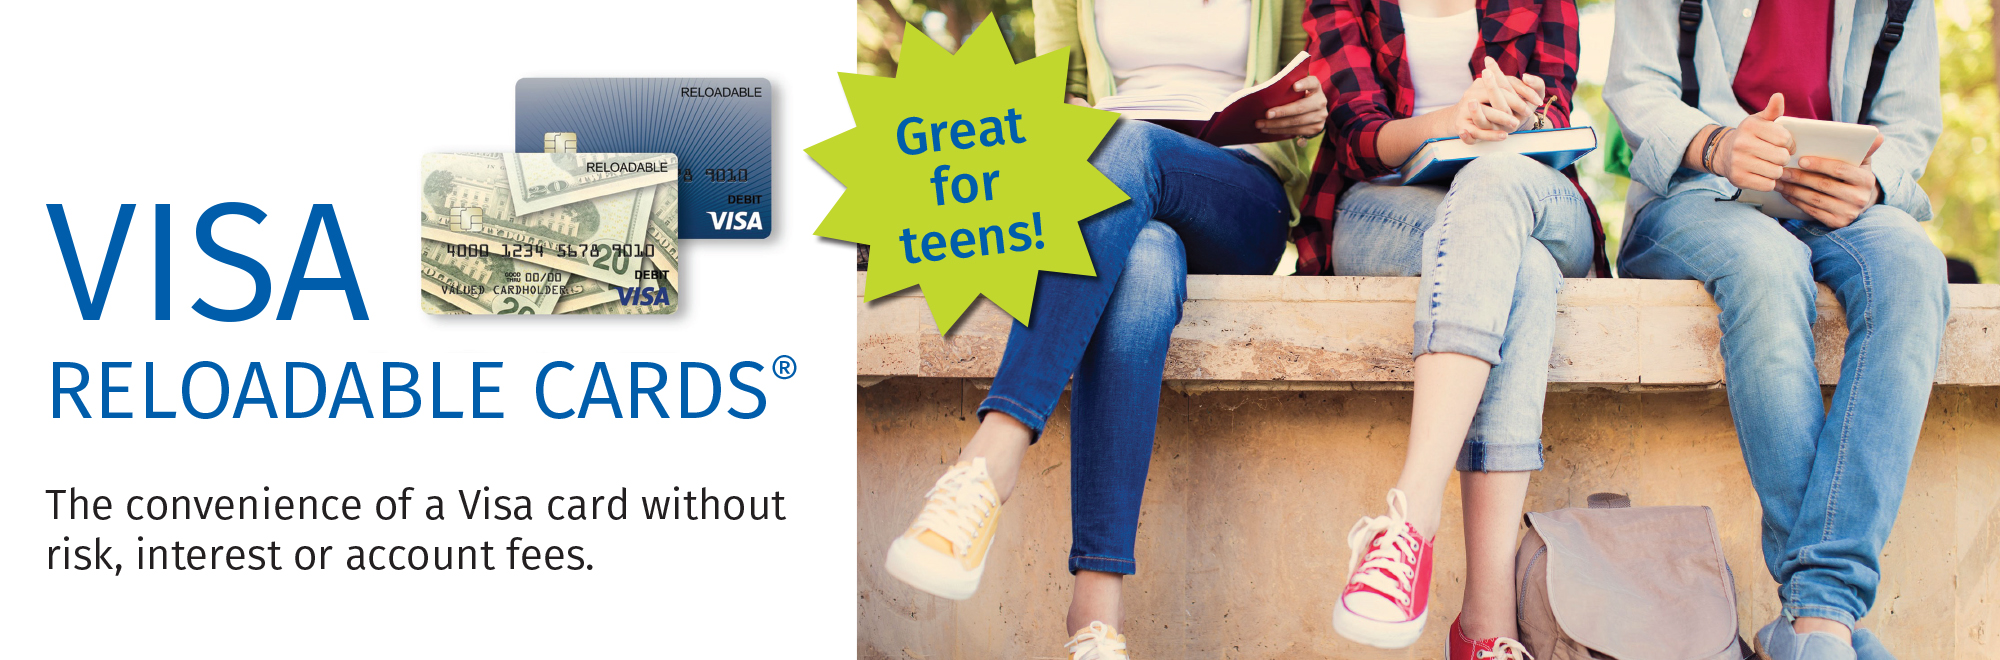 VISA RELOADABLE CARDS® The convenience of a Visa card without risk, interest or account fees. Great for teens!